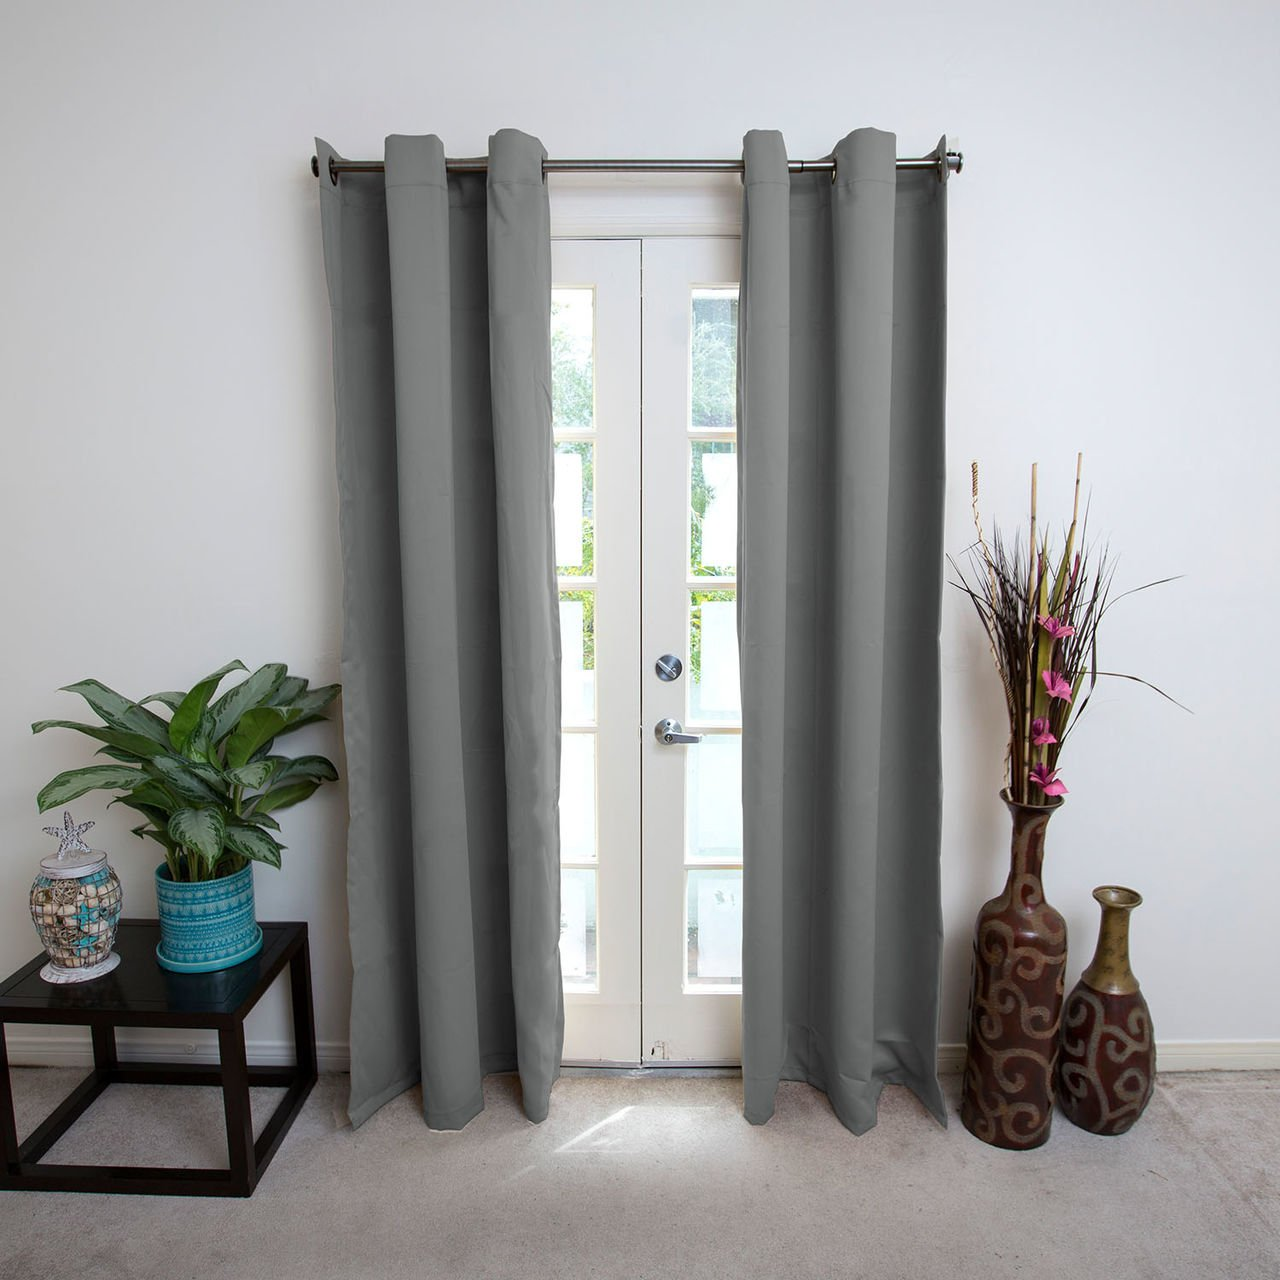 CurtainKitsNow Premium Heavyweight Hanging Curtain Kit - Large B, Includes Two Gray 96'' Tall x 50'' Wide Panels & One 56''-108'' Hanging Rod